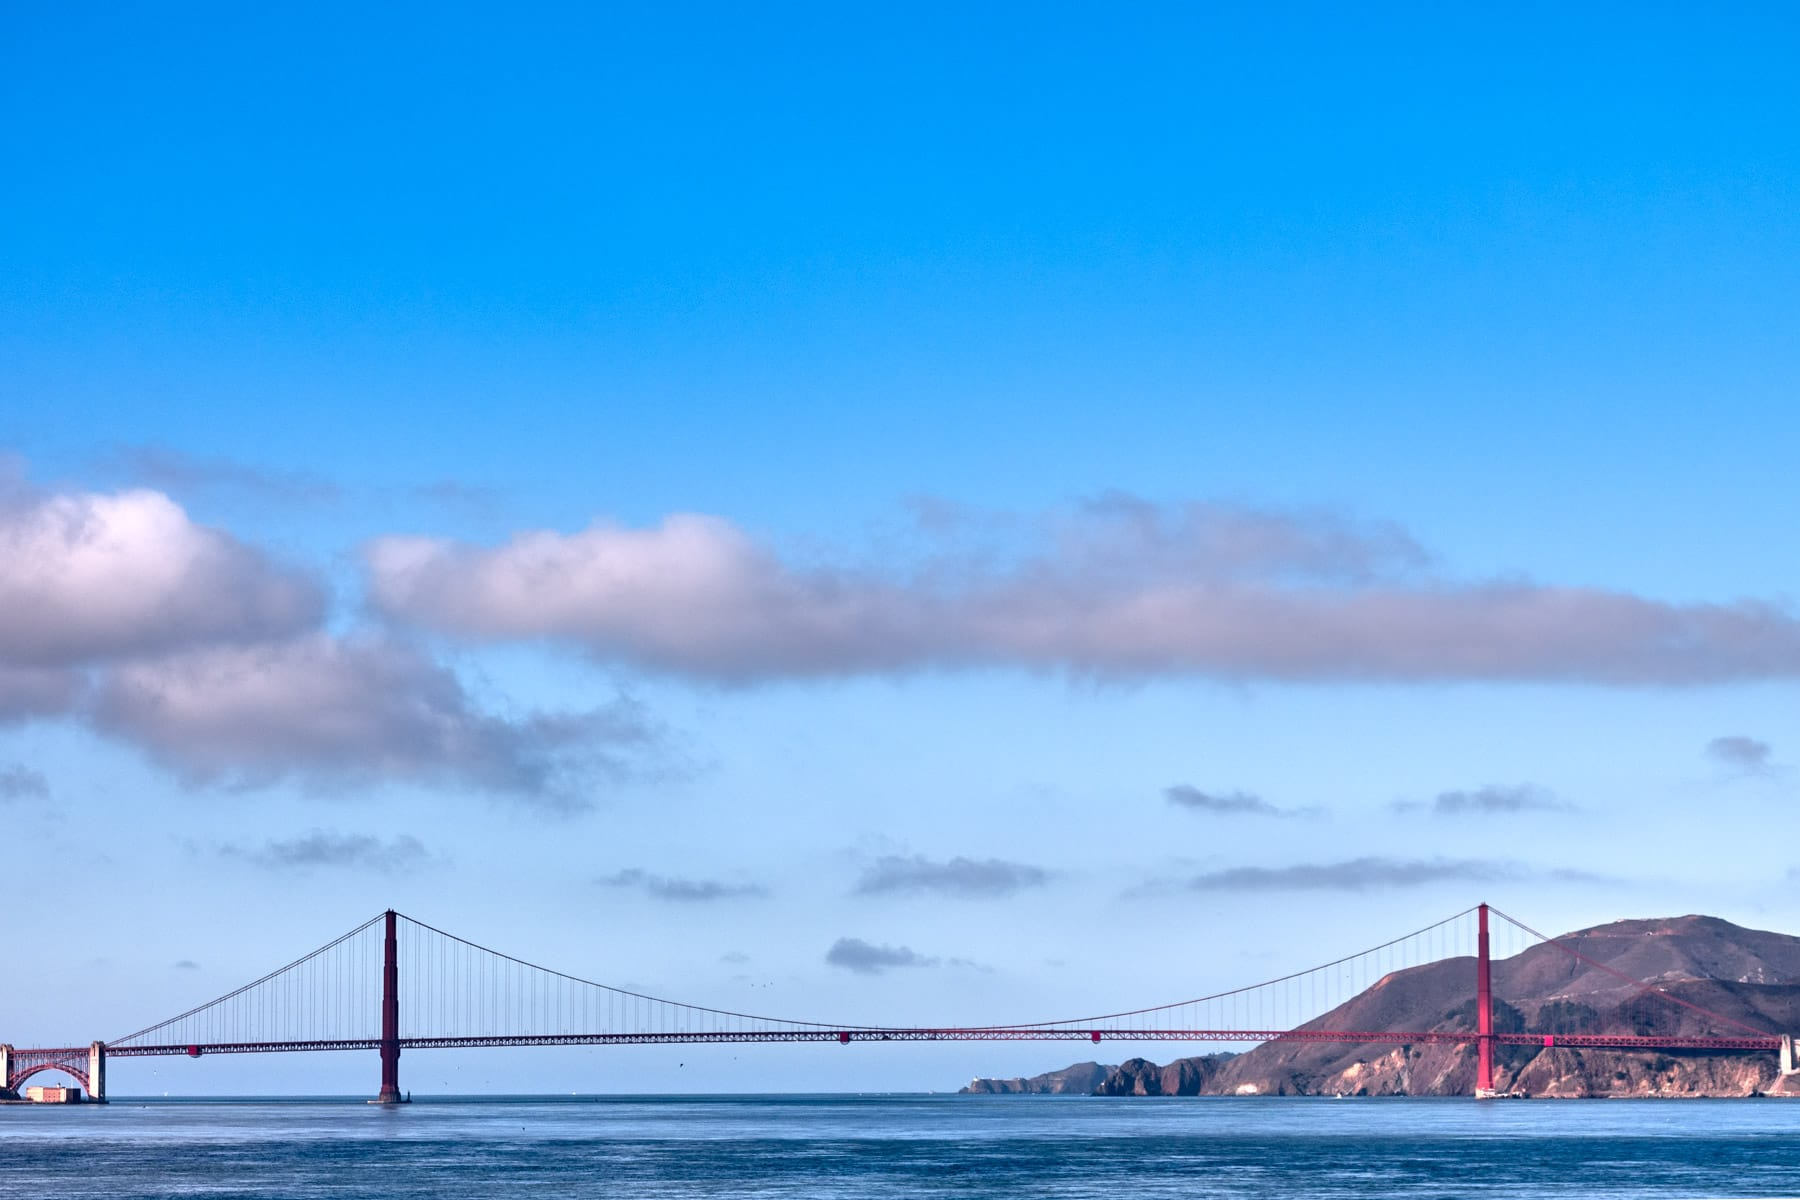 The Golden Gate Bridge spans its namesake cataract at the entrance to San Francisco Bay.